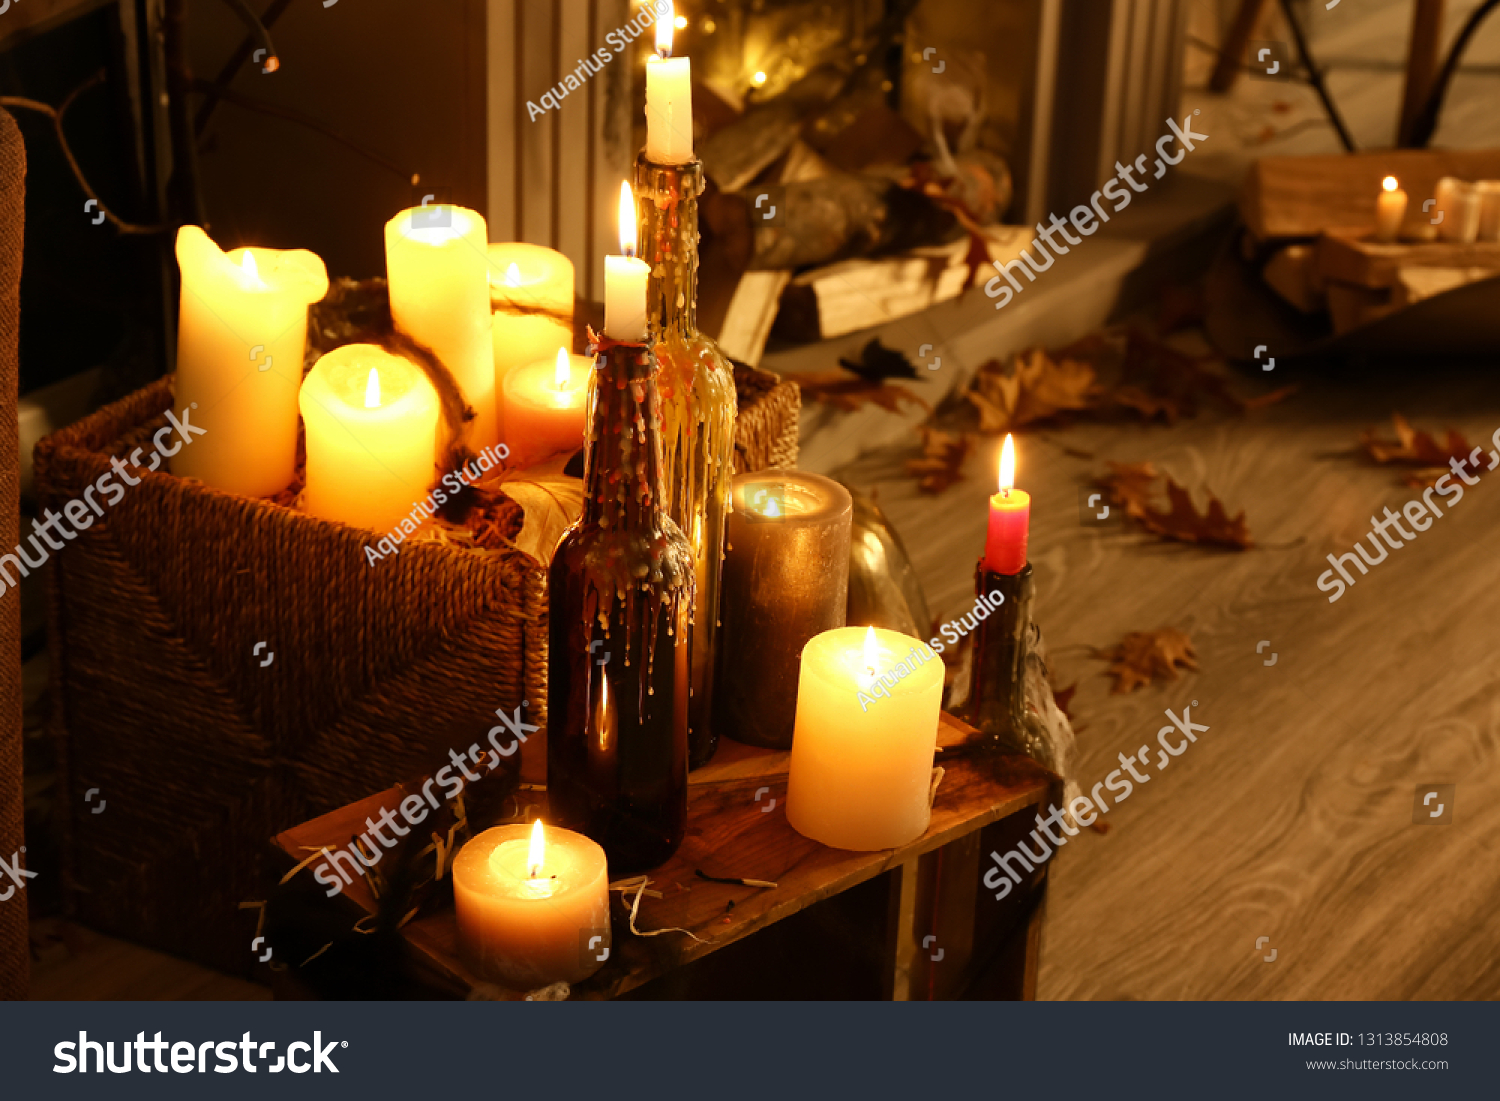 Burning Candles Decor Halloween Party Room Stock Photo Edit Now 1313854808